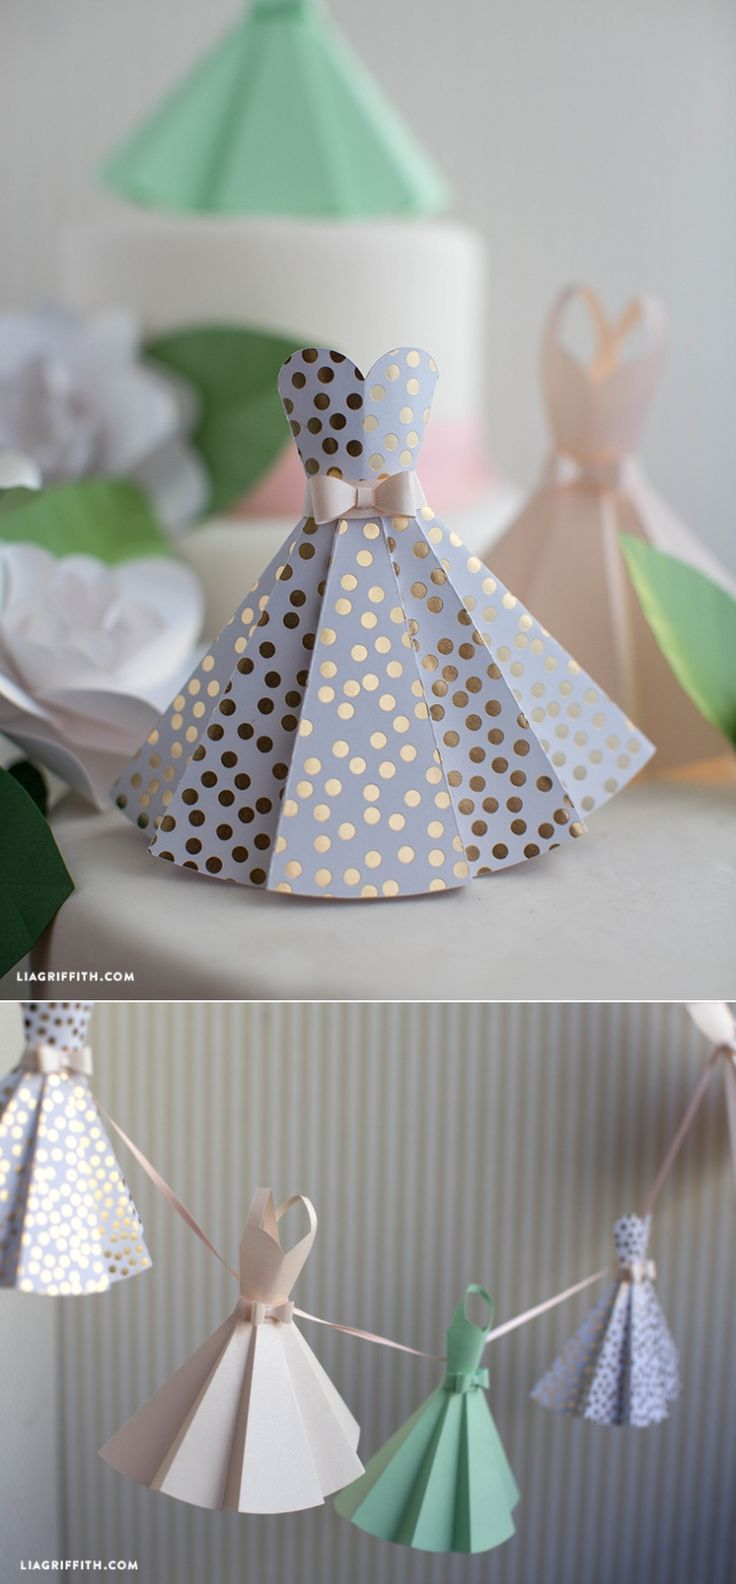 #diywedding #weddingdecor #paperdress www.LiaGriffith.com